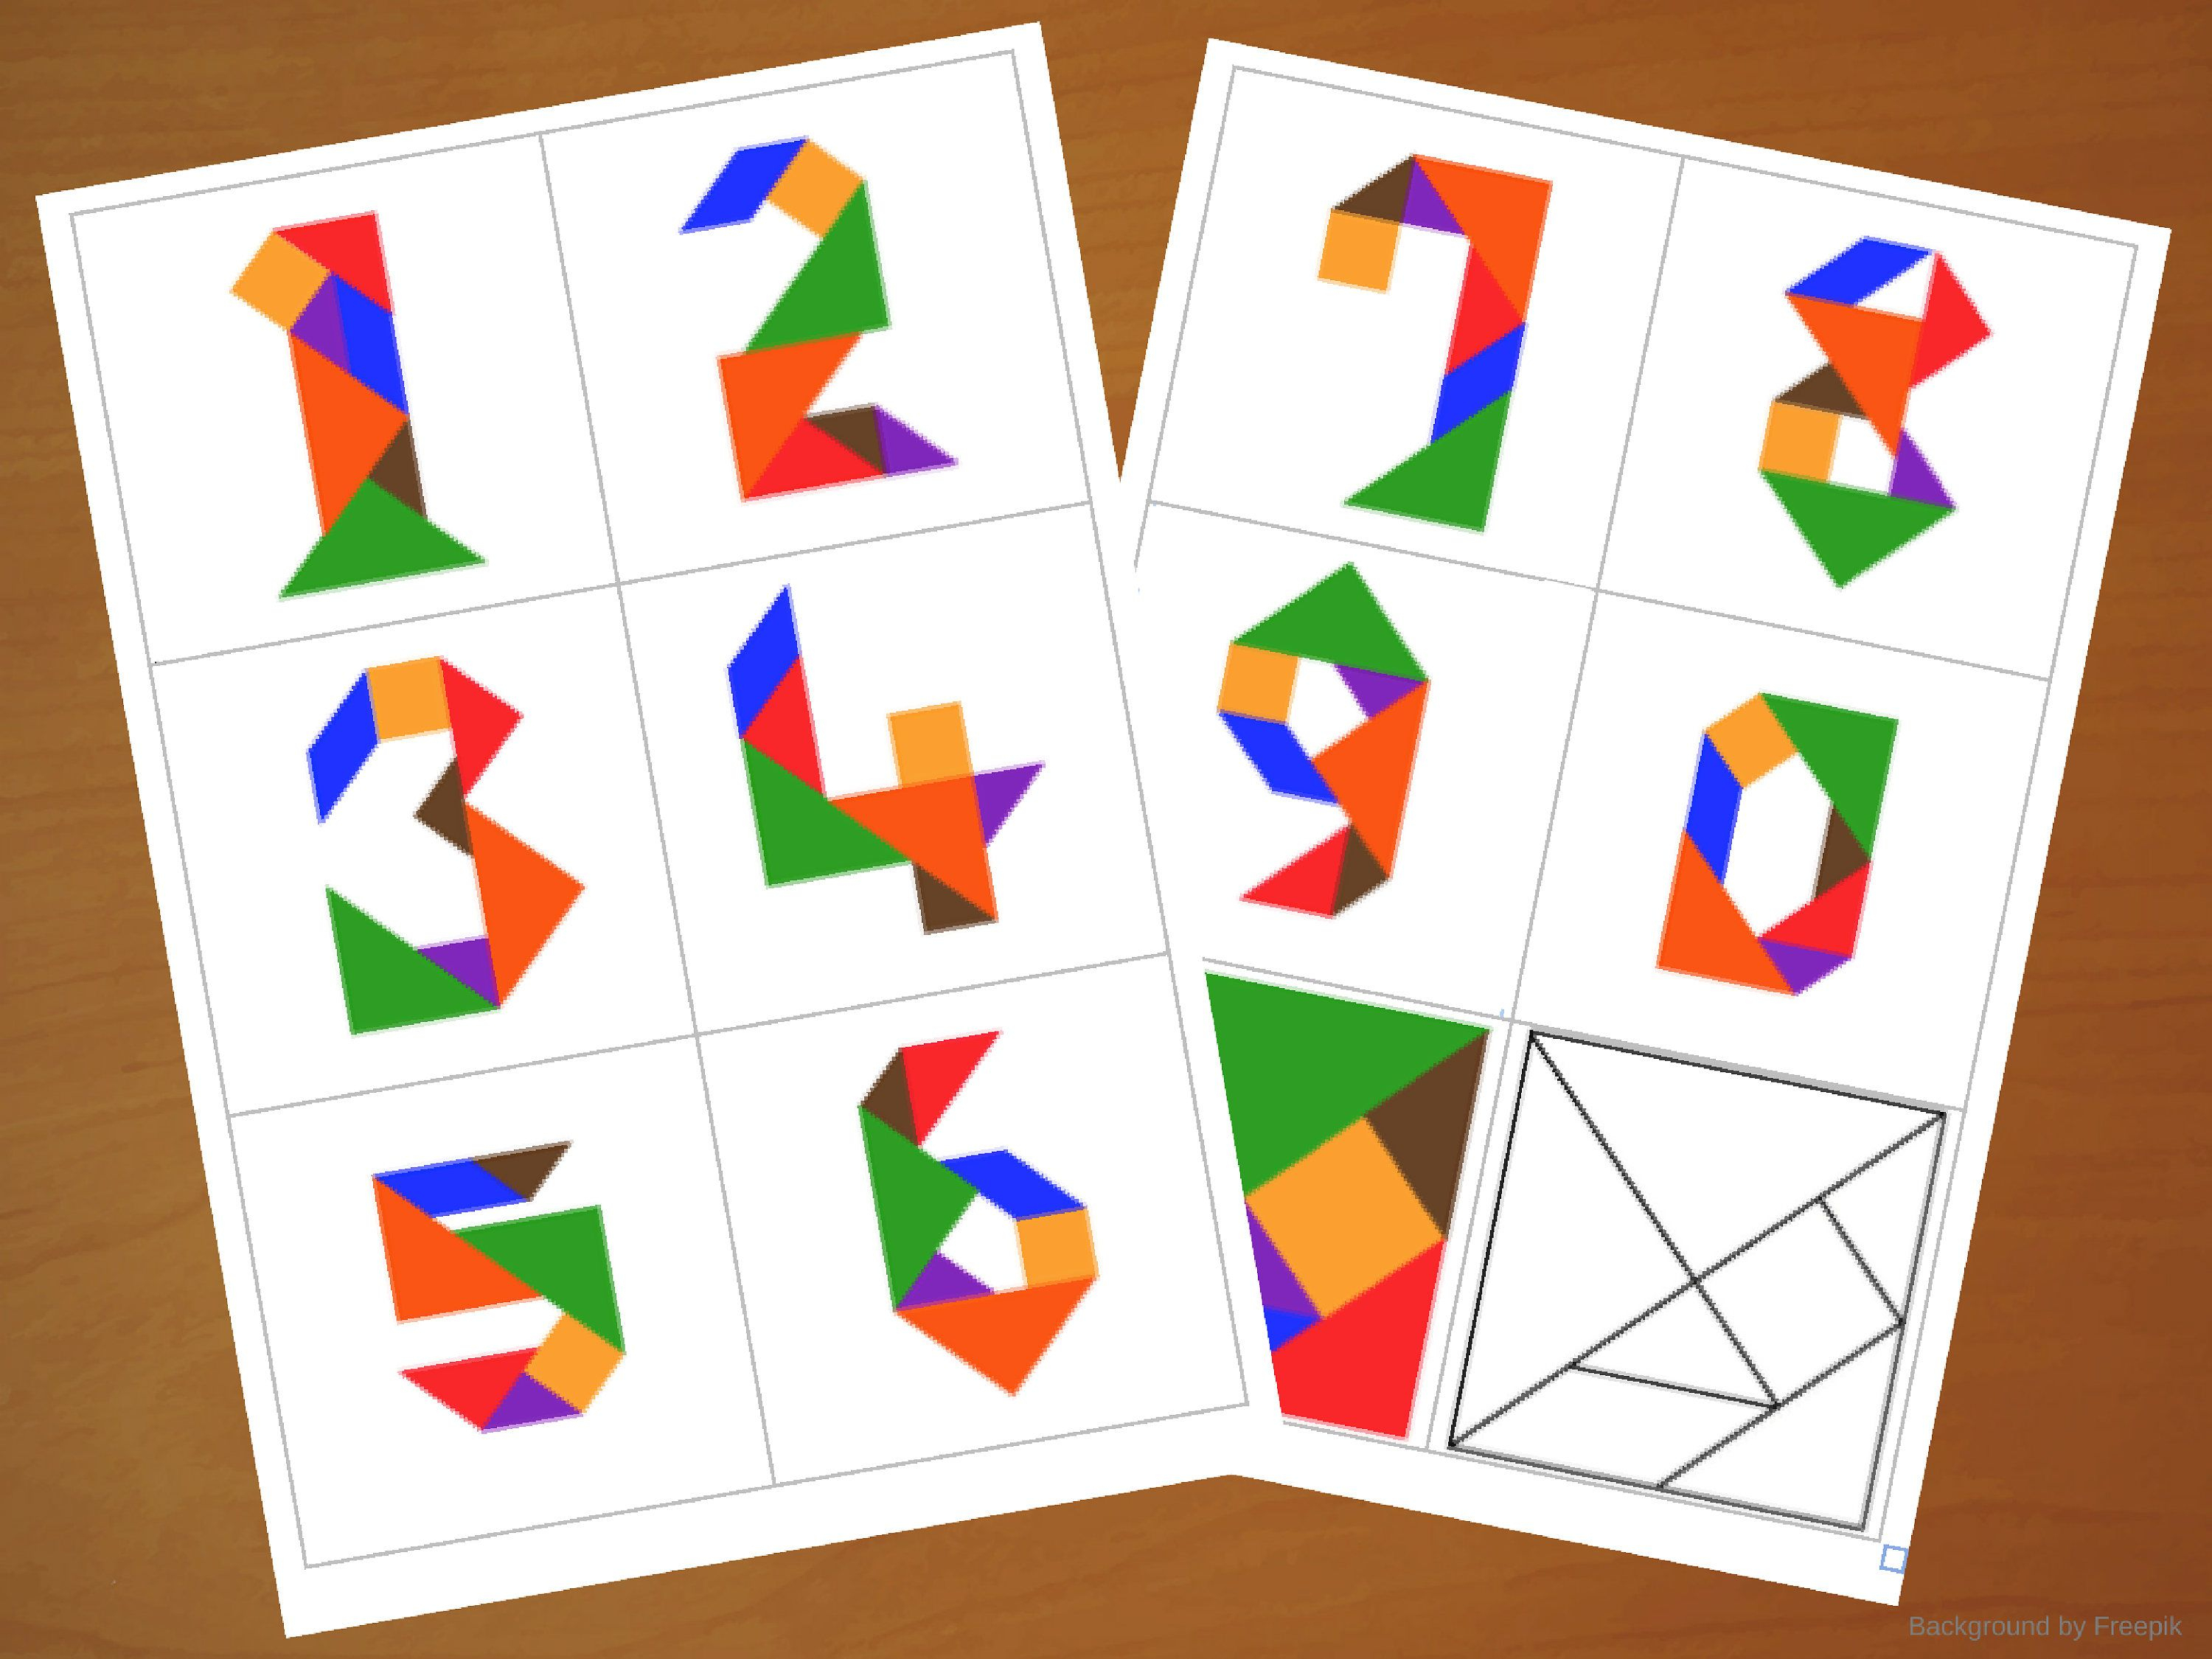 Downloadable Tangram Cards - Tangram Numbers - Tangram Puzzles - 7 Piece Tangram Puzzle Printable